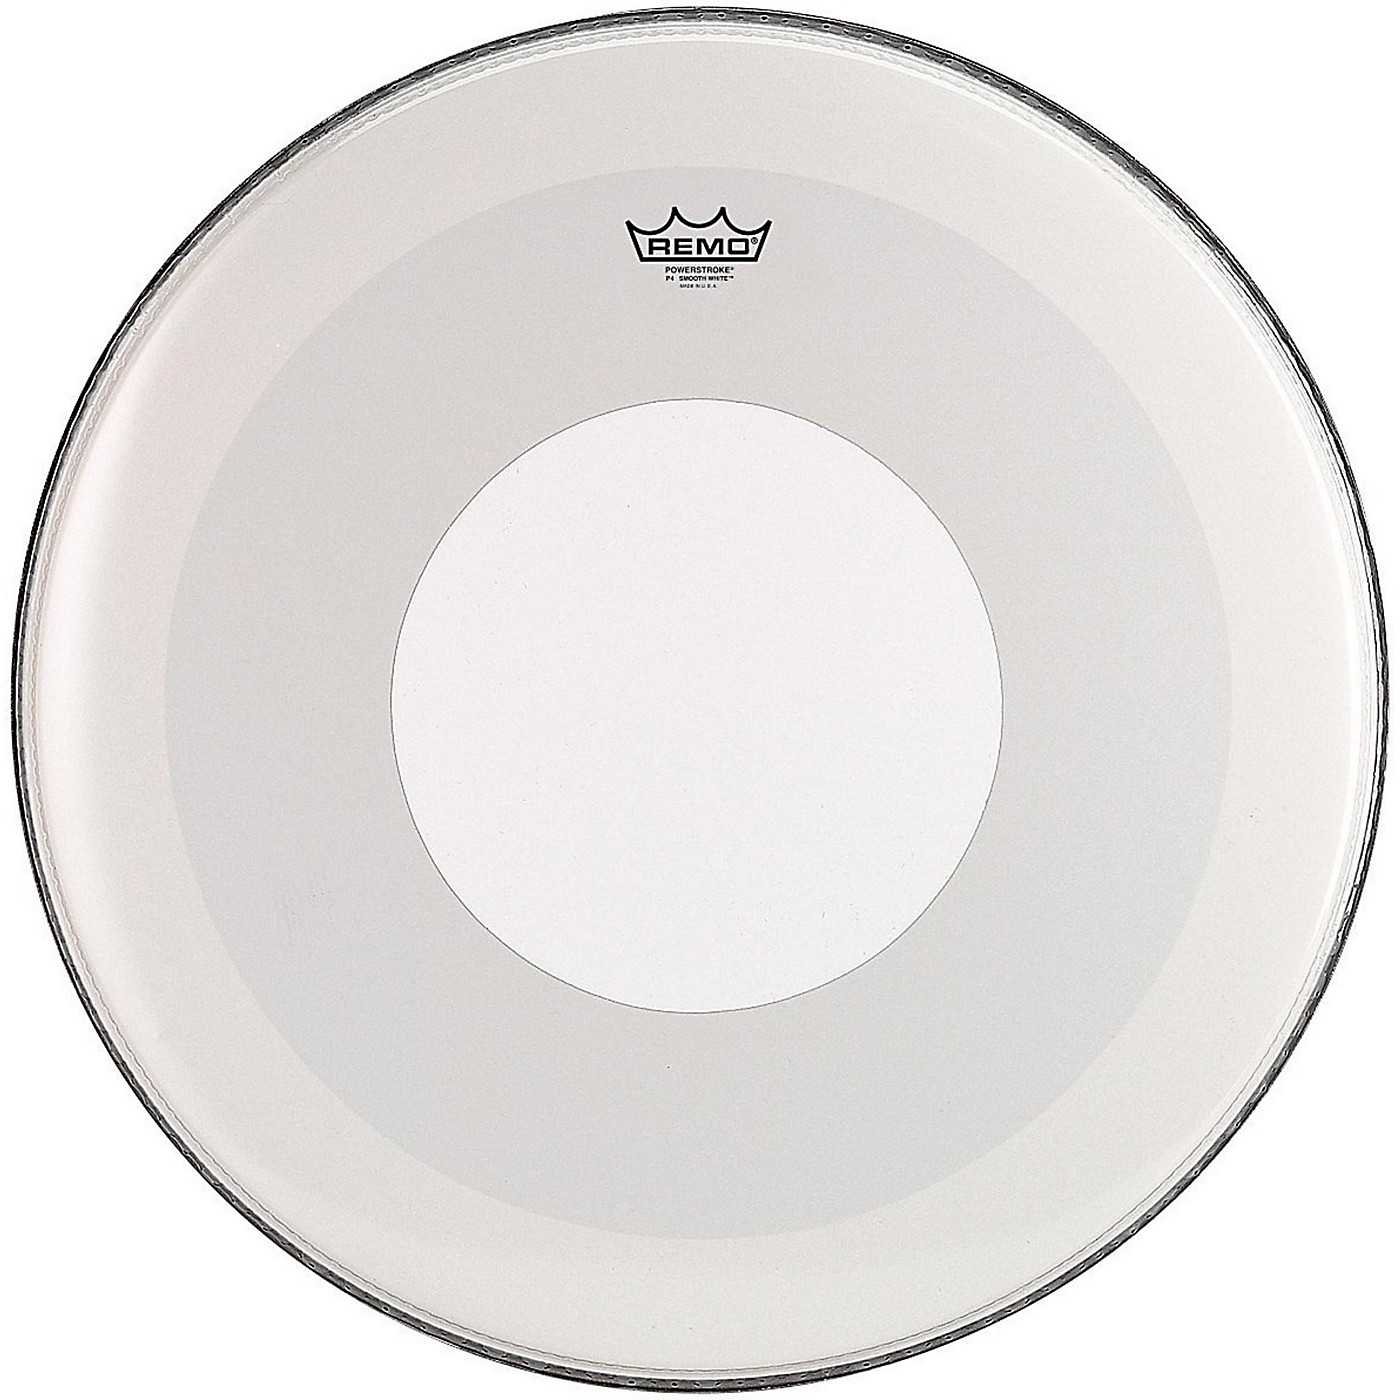 Remo Powerstroke 4 Smooth White Batter Bass Drum Head with White Dot thumbnail